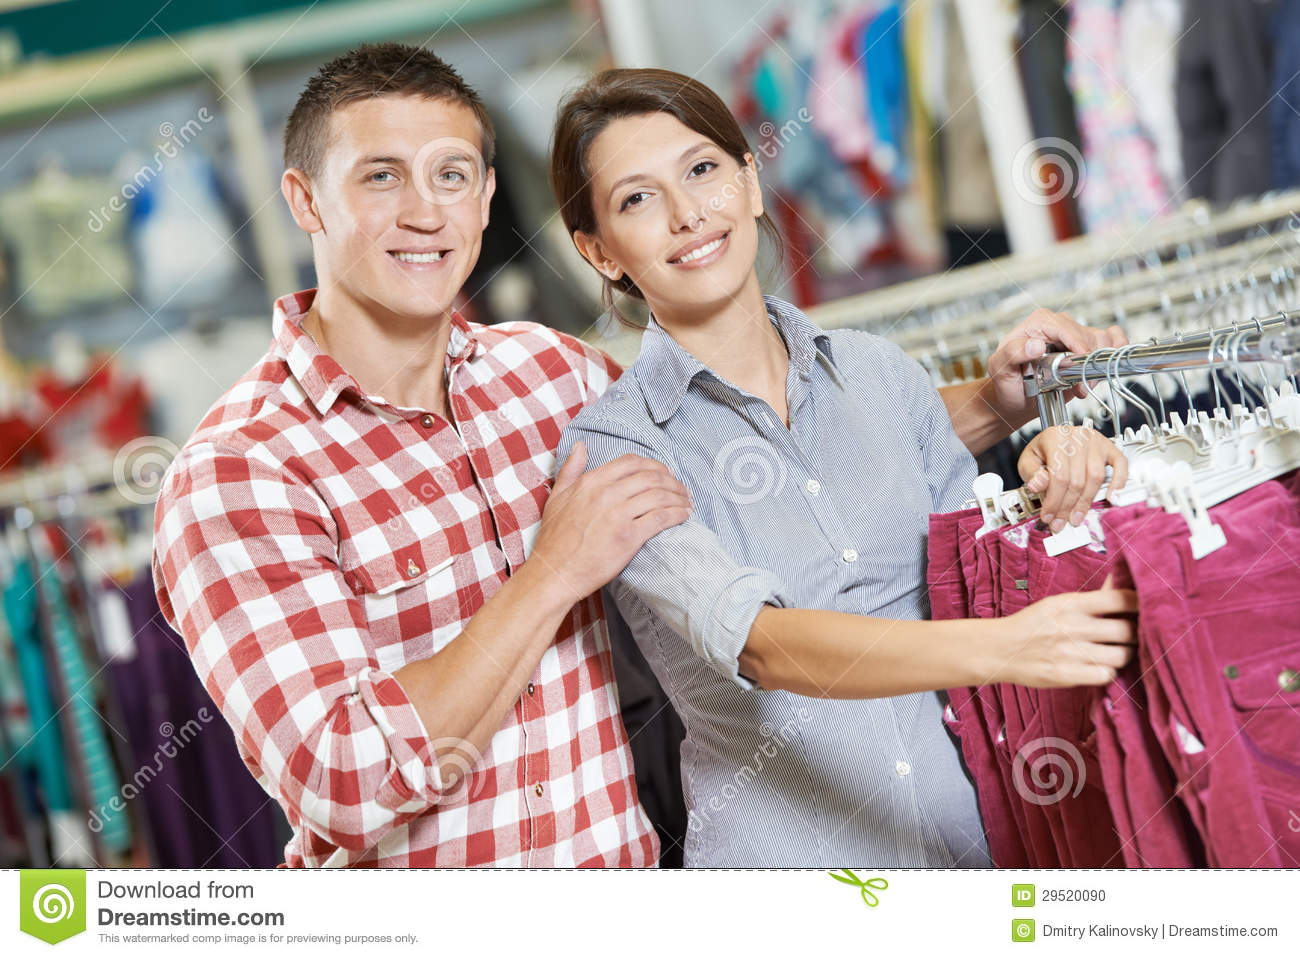 Stock Photo: Young family at clothes shopping store